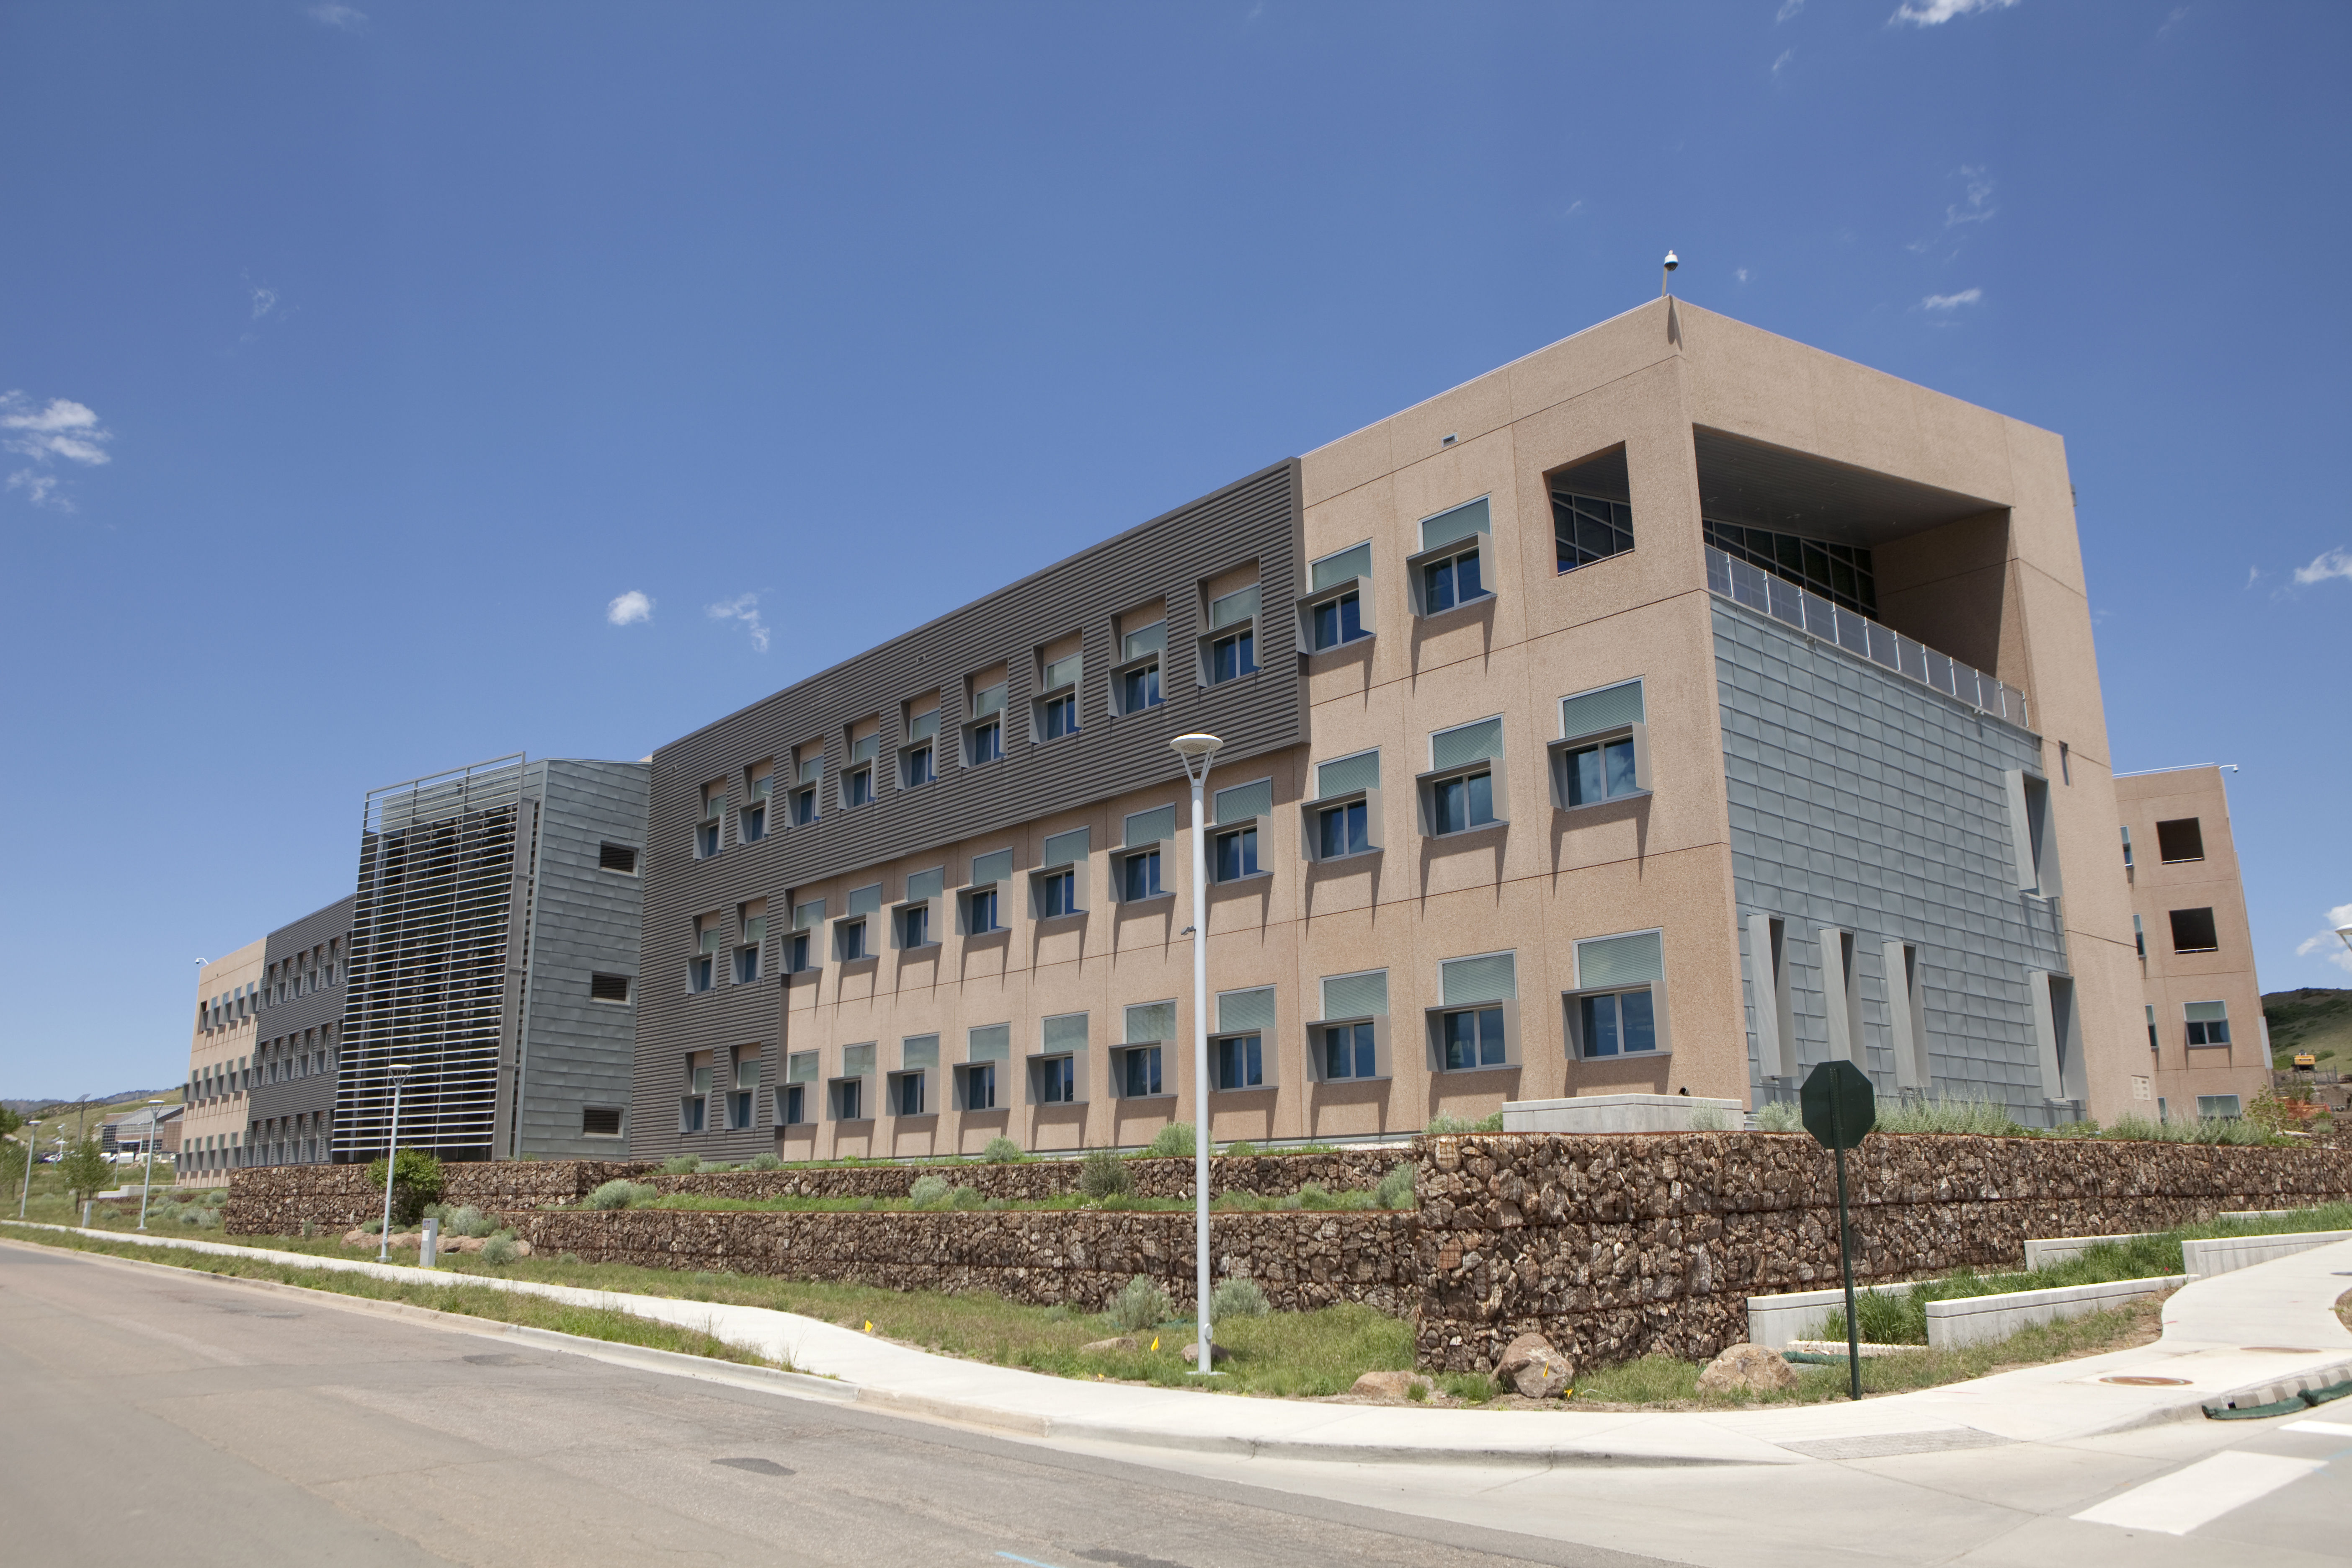 Research Support Facility Building at NREL Golden Colorado